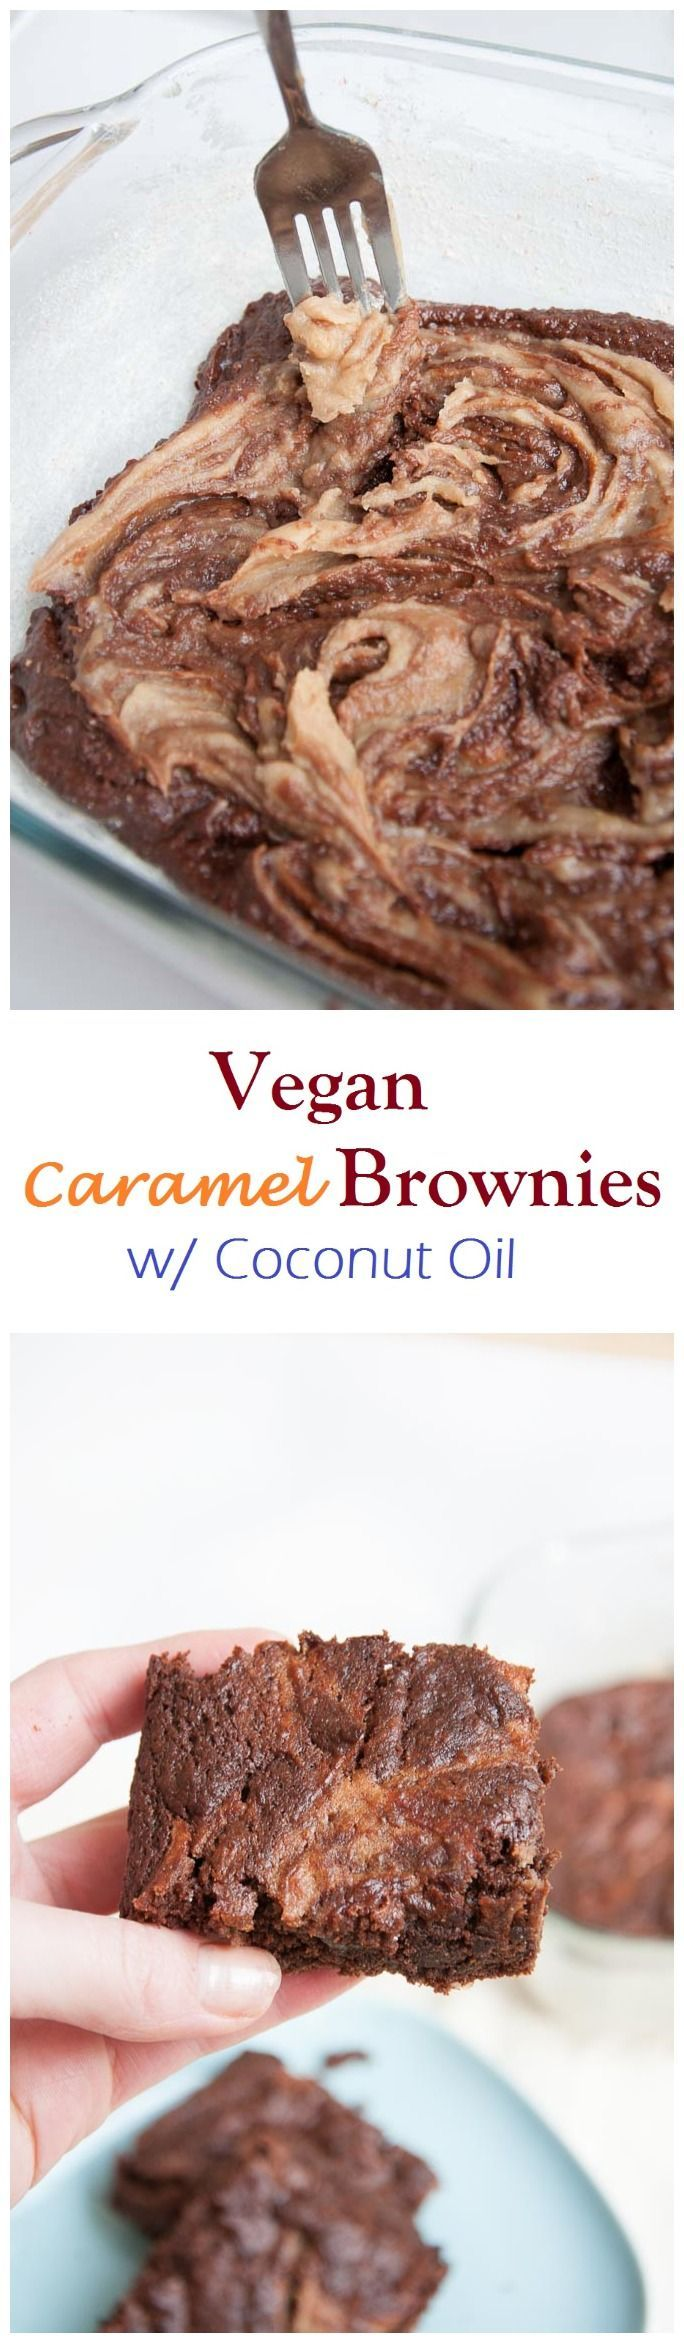 Vegan Caramel Brownies Recipe w/ Coconut Oil | VeganFamilyRecipes.com | #clean eating #eatclean #dessert #chocolate #whole grain. Made Just Right. Plant Based. Earth Balance.